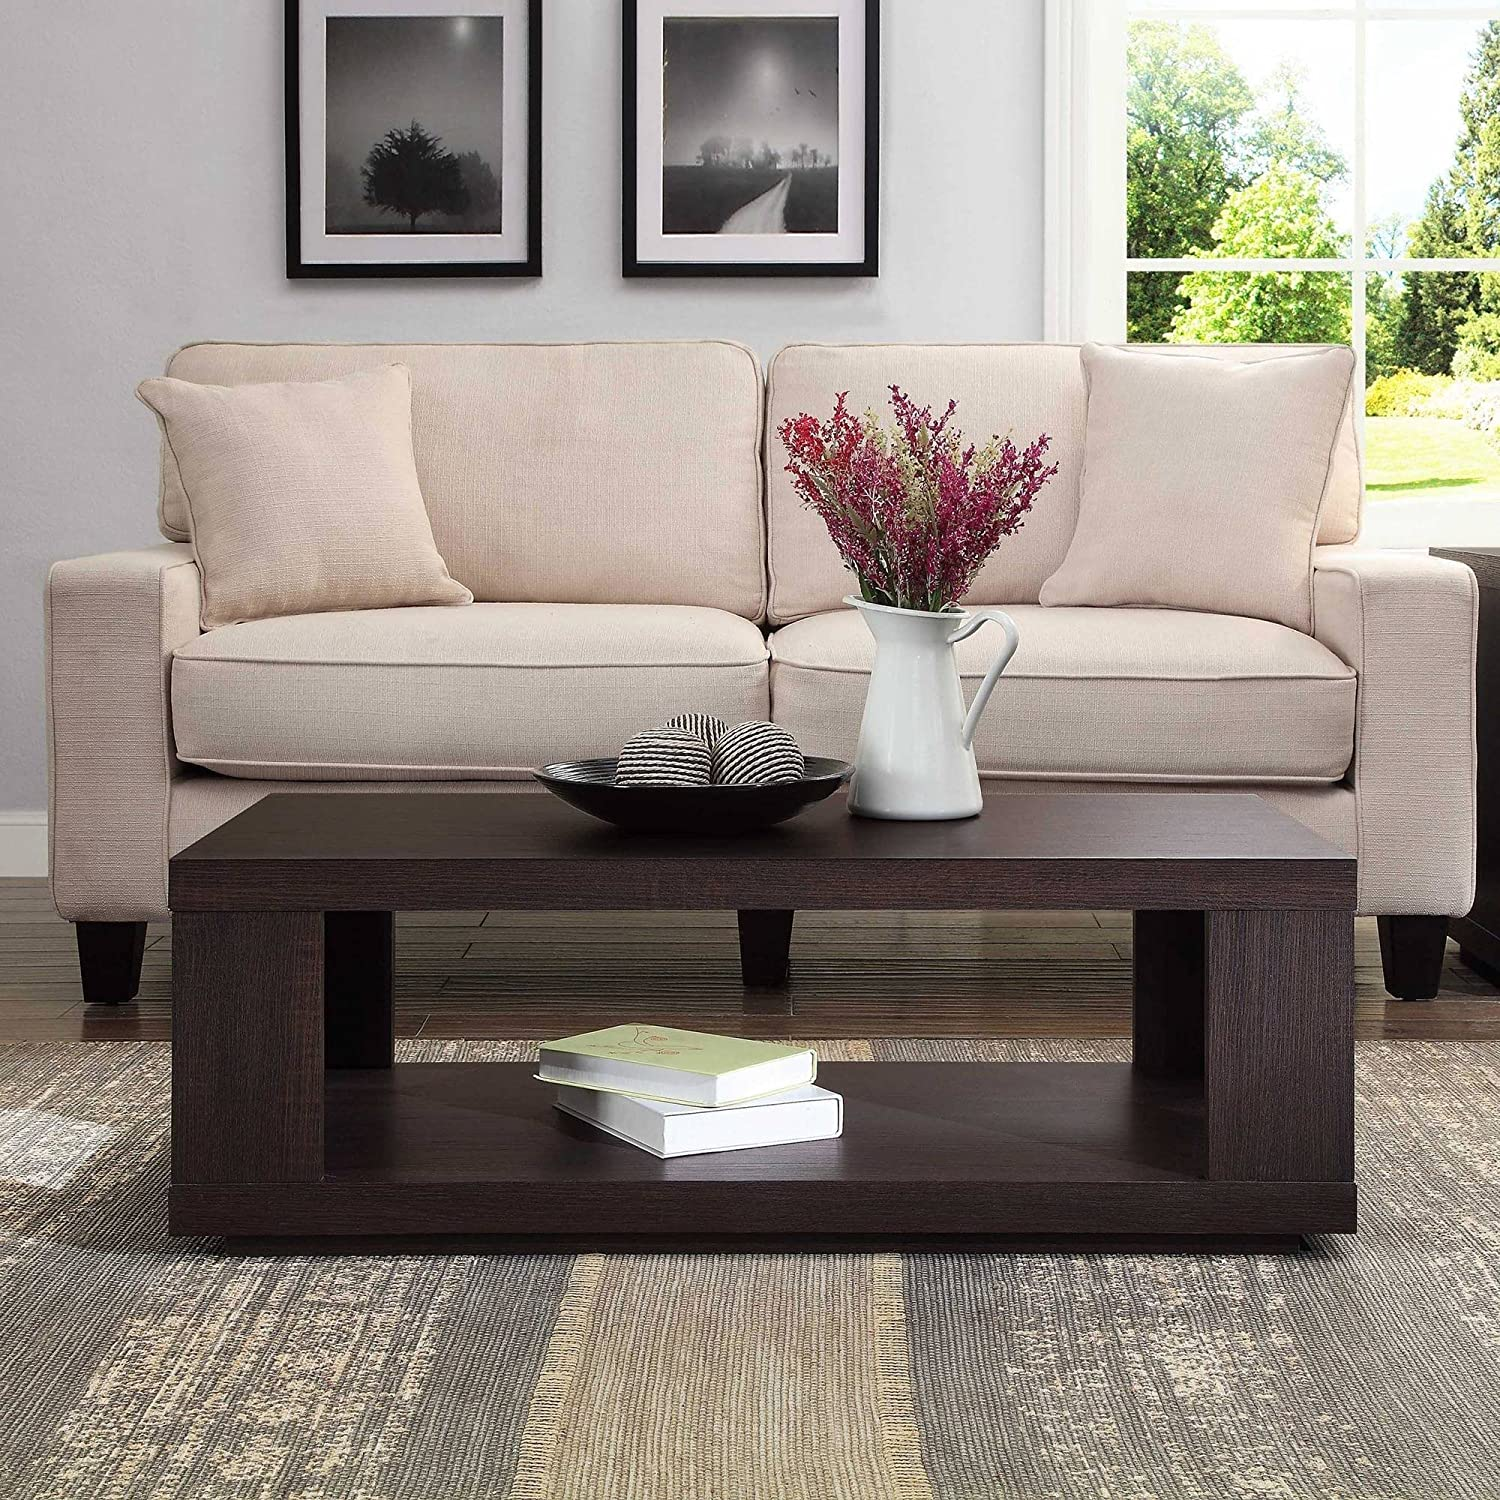 Contemporary Design Steele Rectangle Coffee Table for Living Room Made of Wood in Espresso Finish 40 W x 20 D x 14 H in.